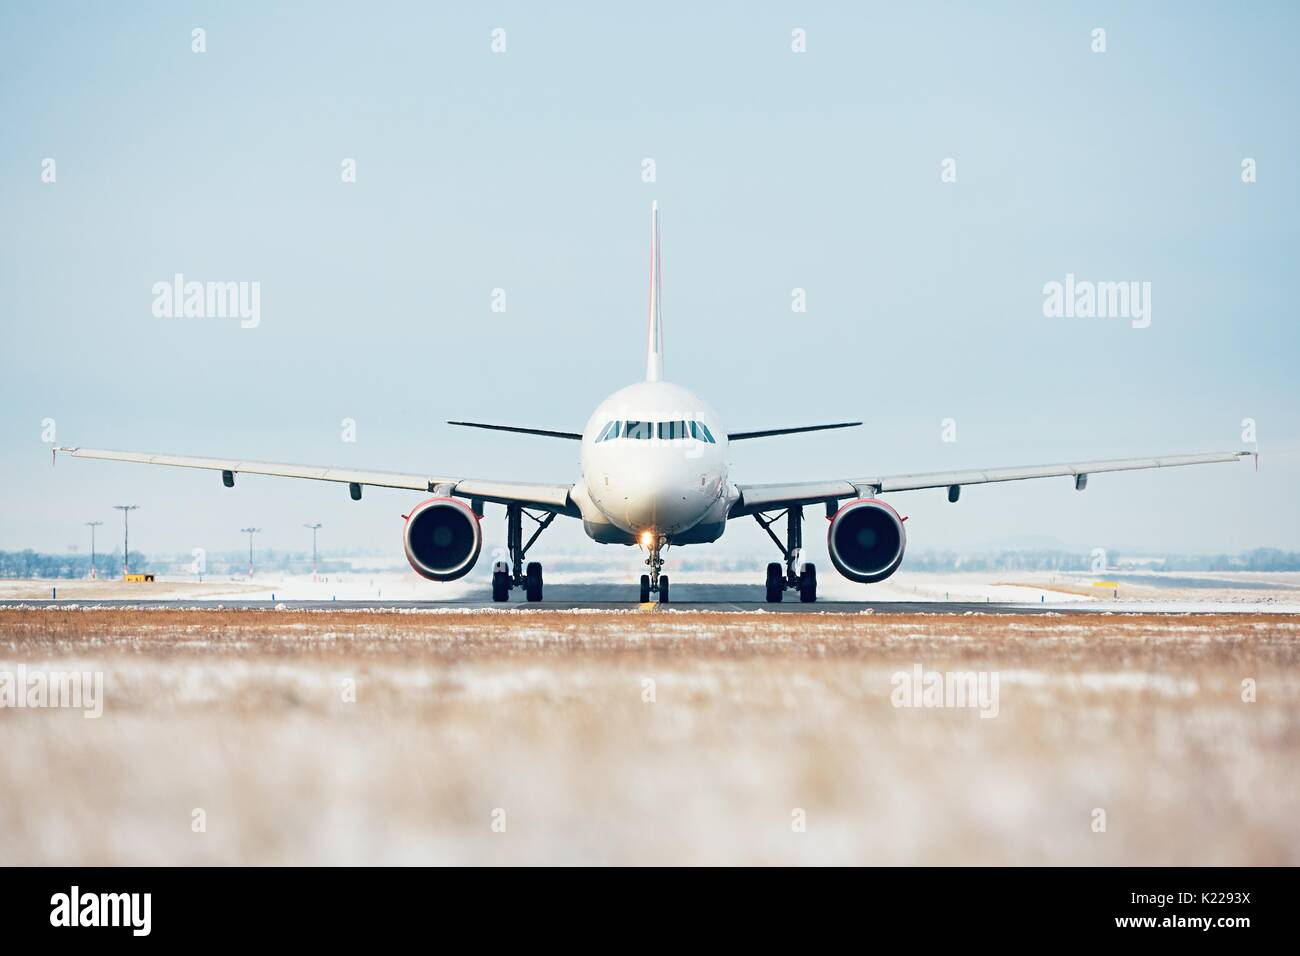 Airport in winter. Airplane taxiing to the runway for take off. - Stock Image